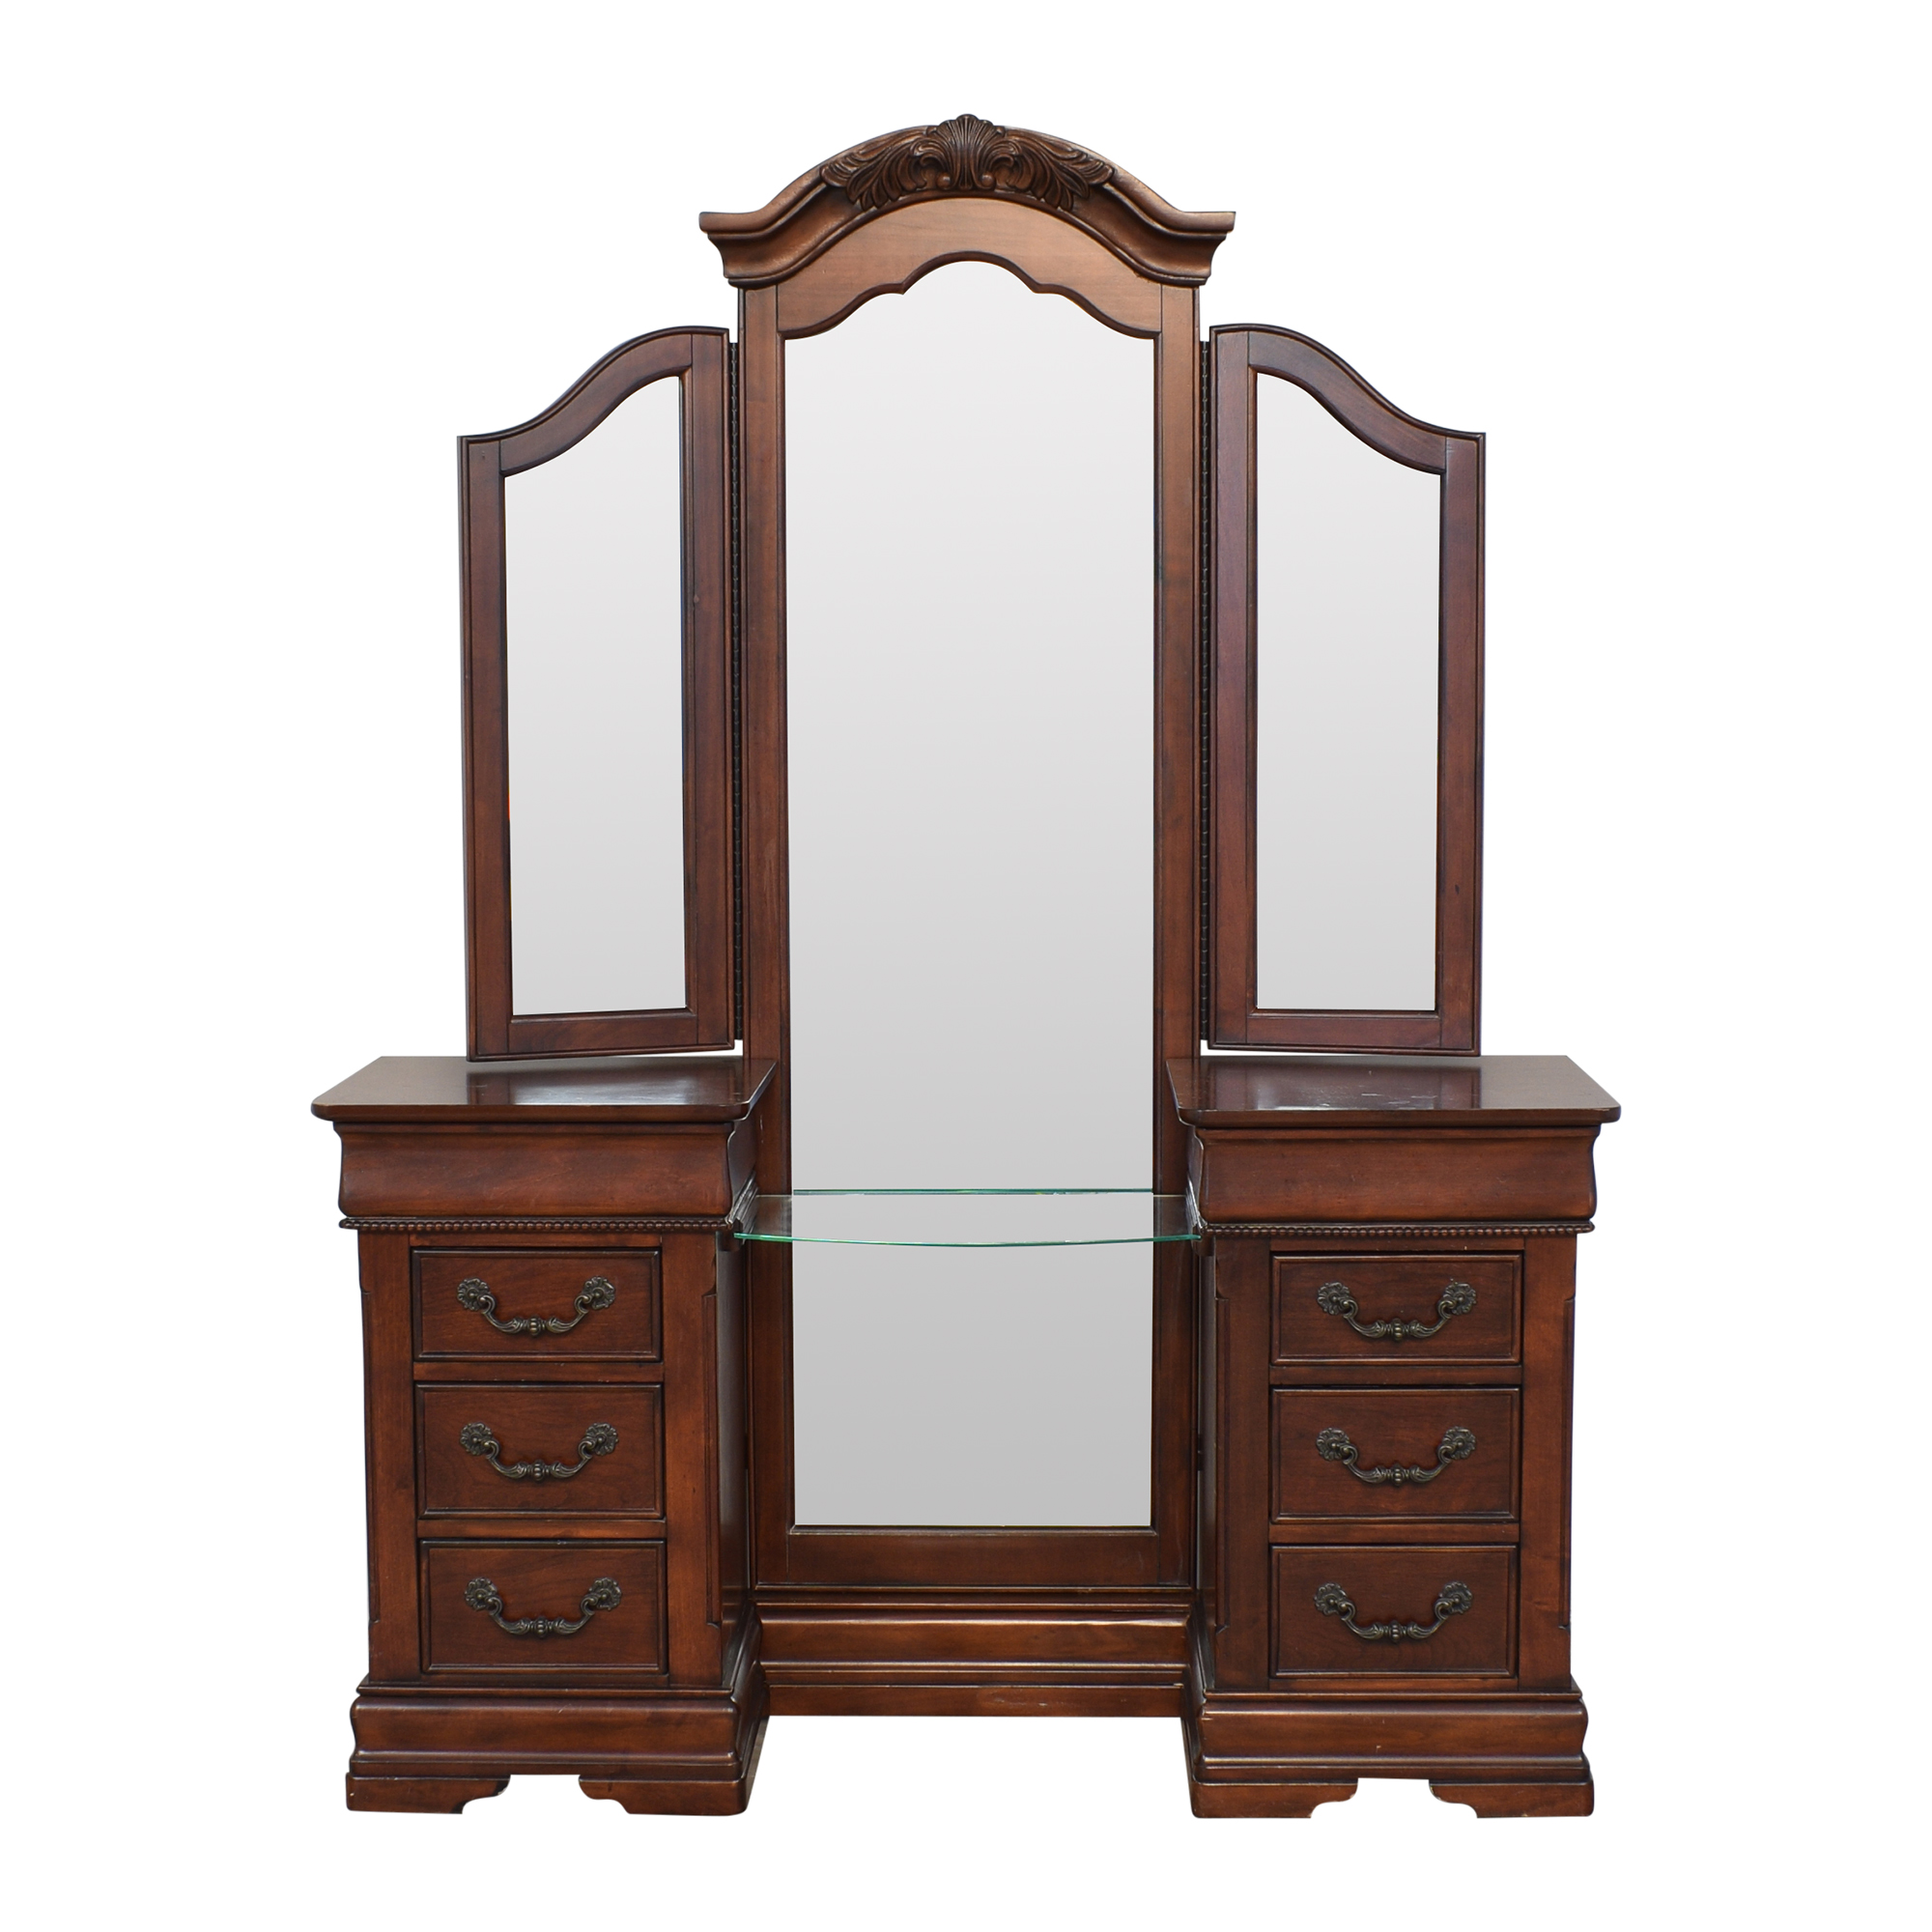 Poh Huat Furniture Vanity Table / Storage